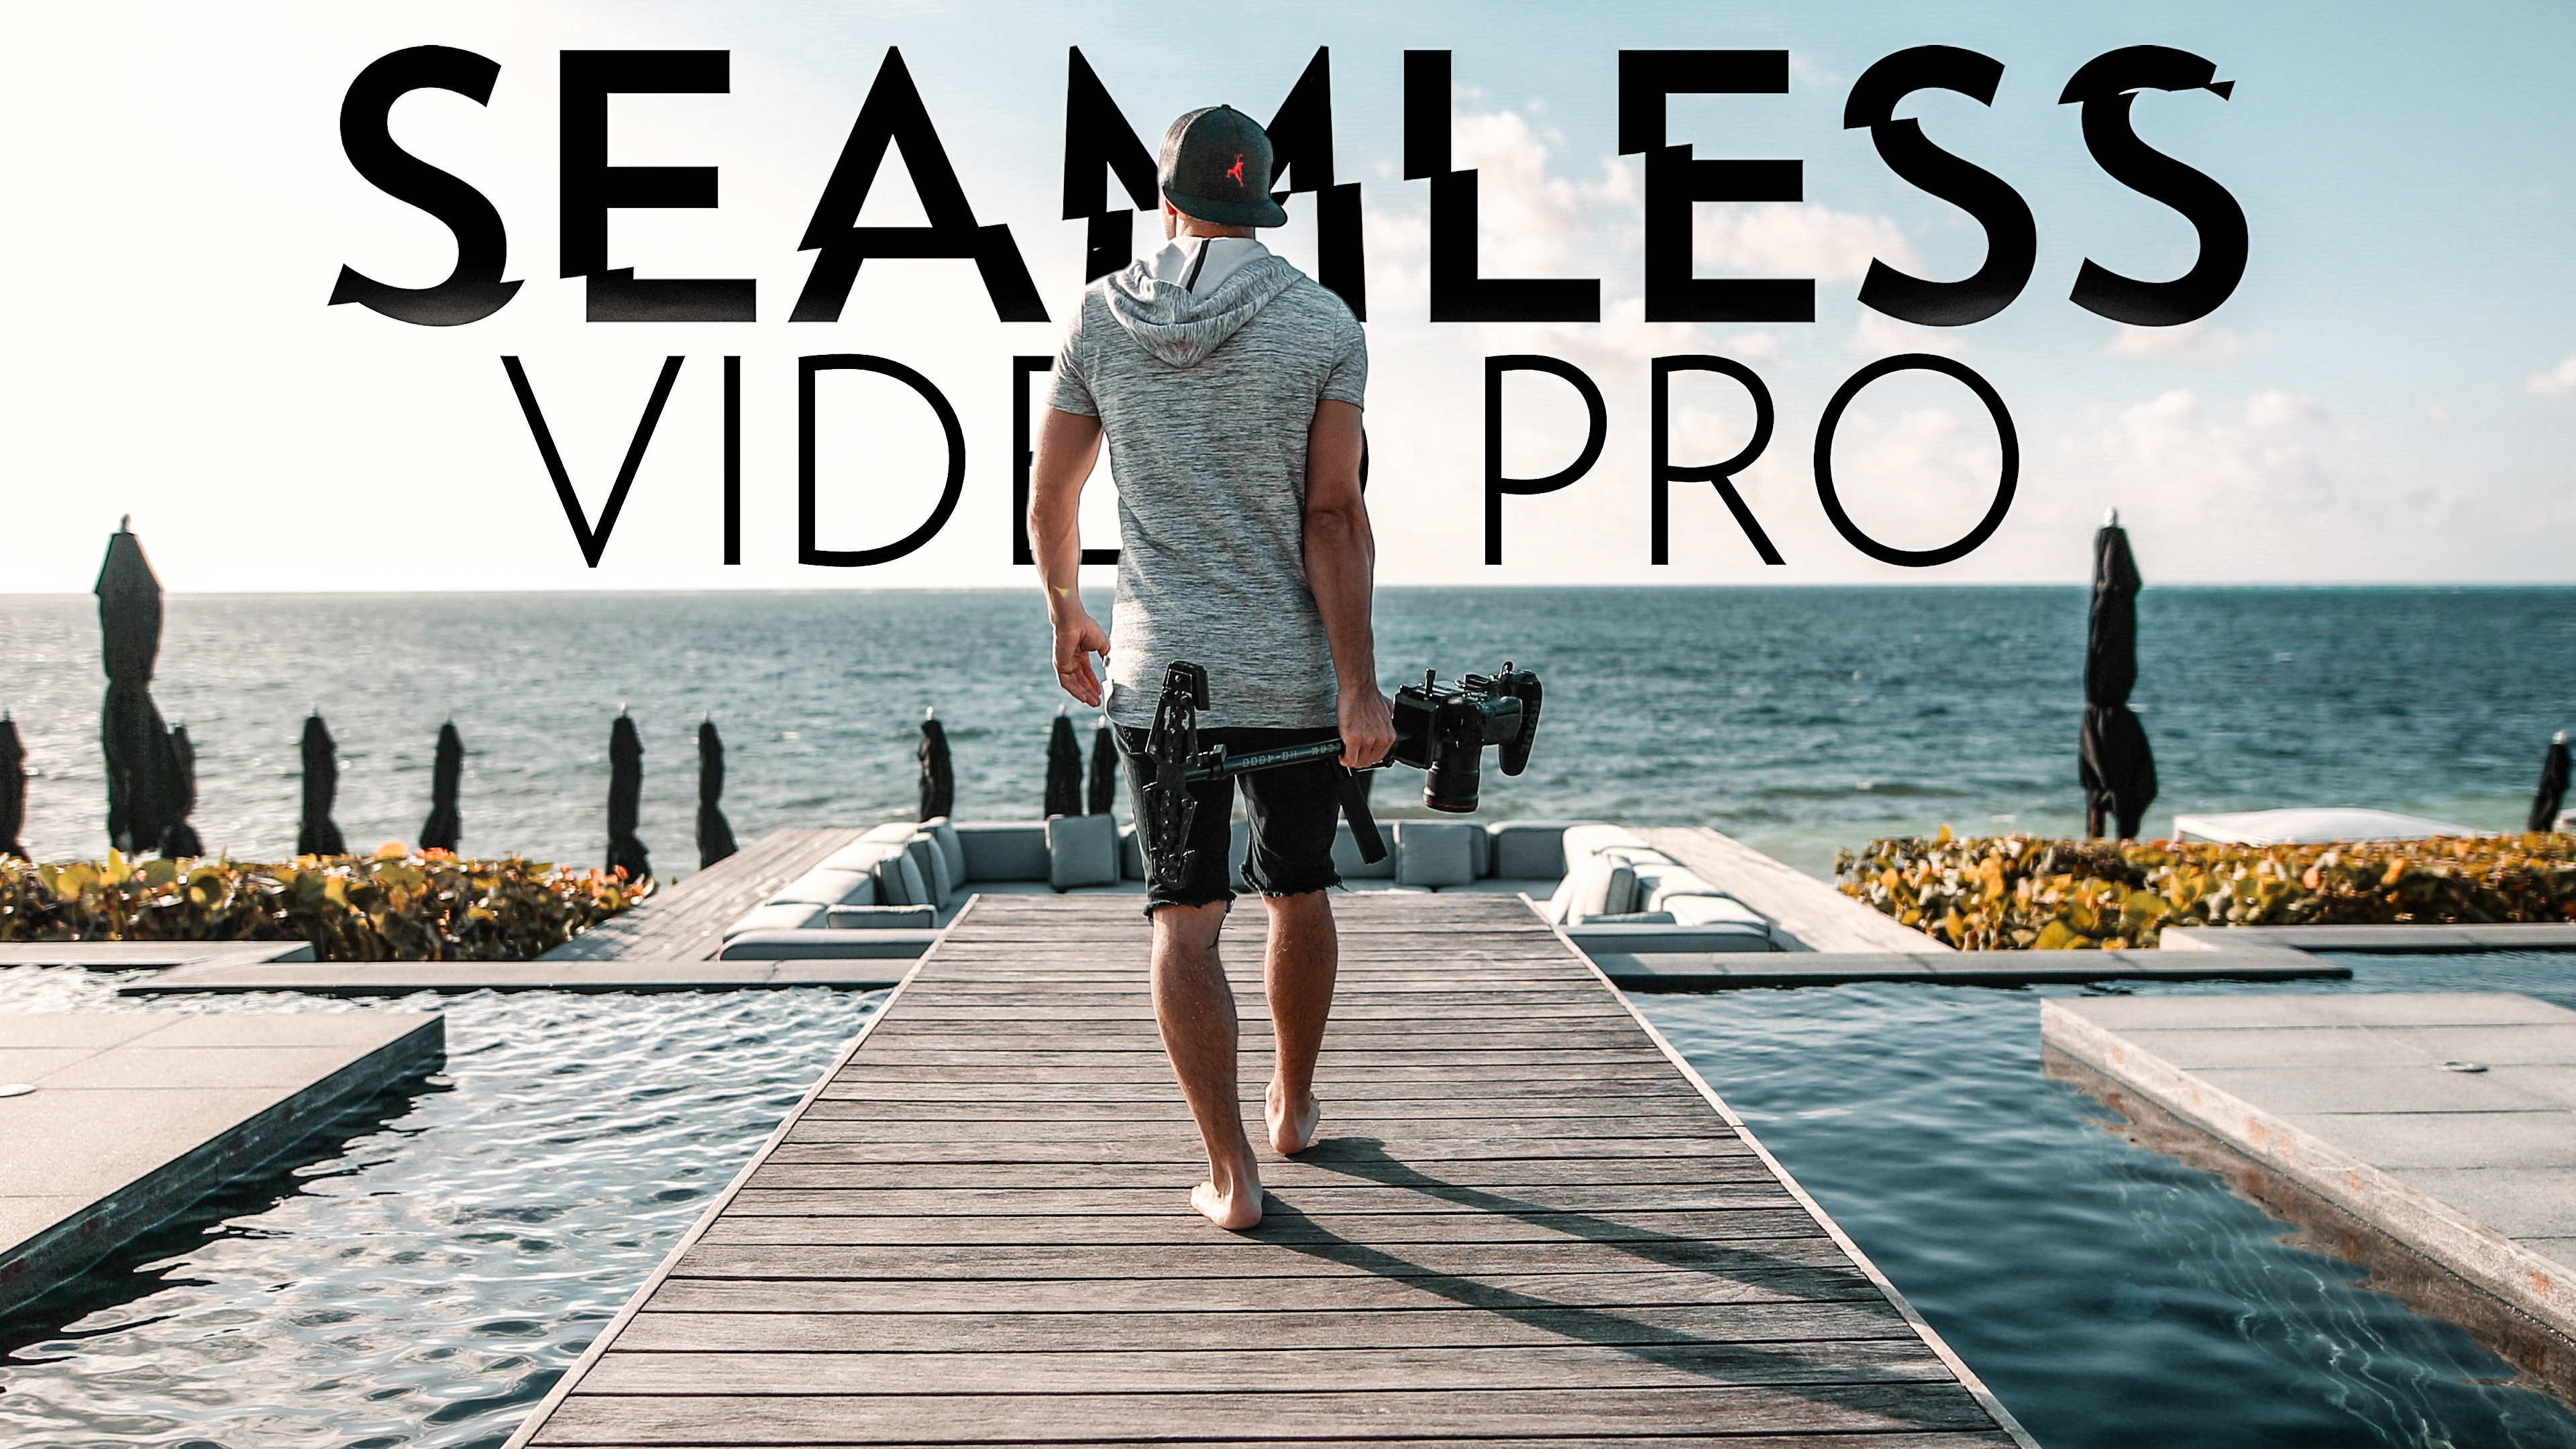 seamless video pro thumb.jpg